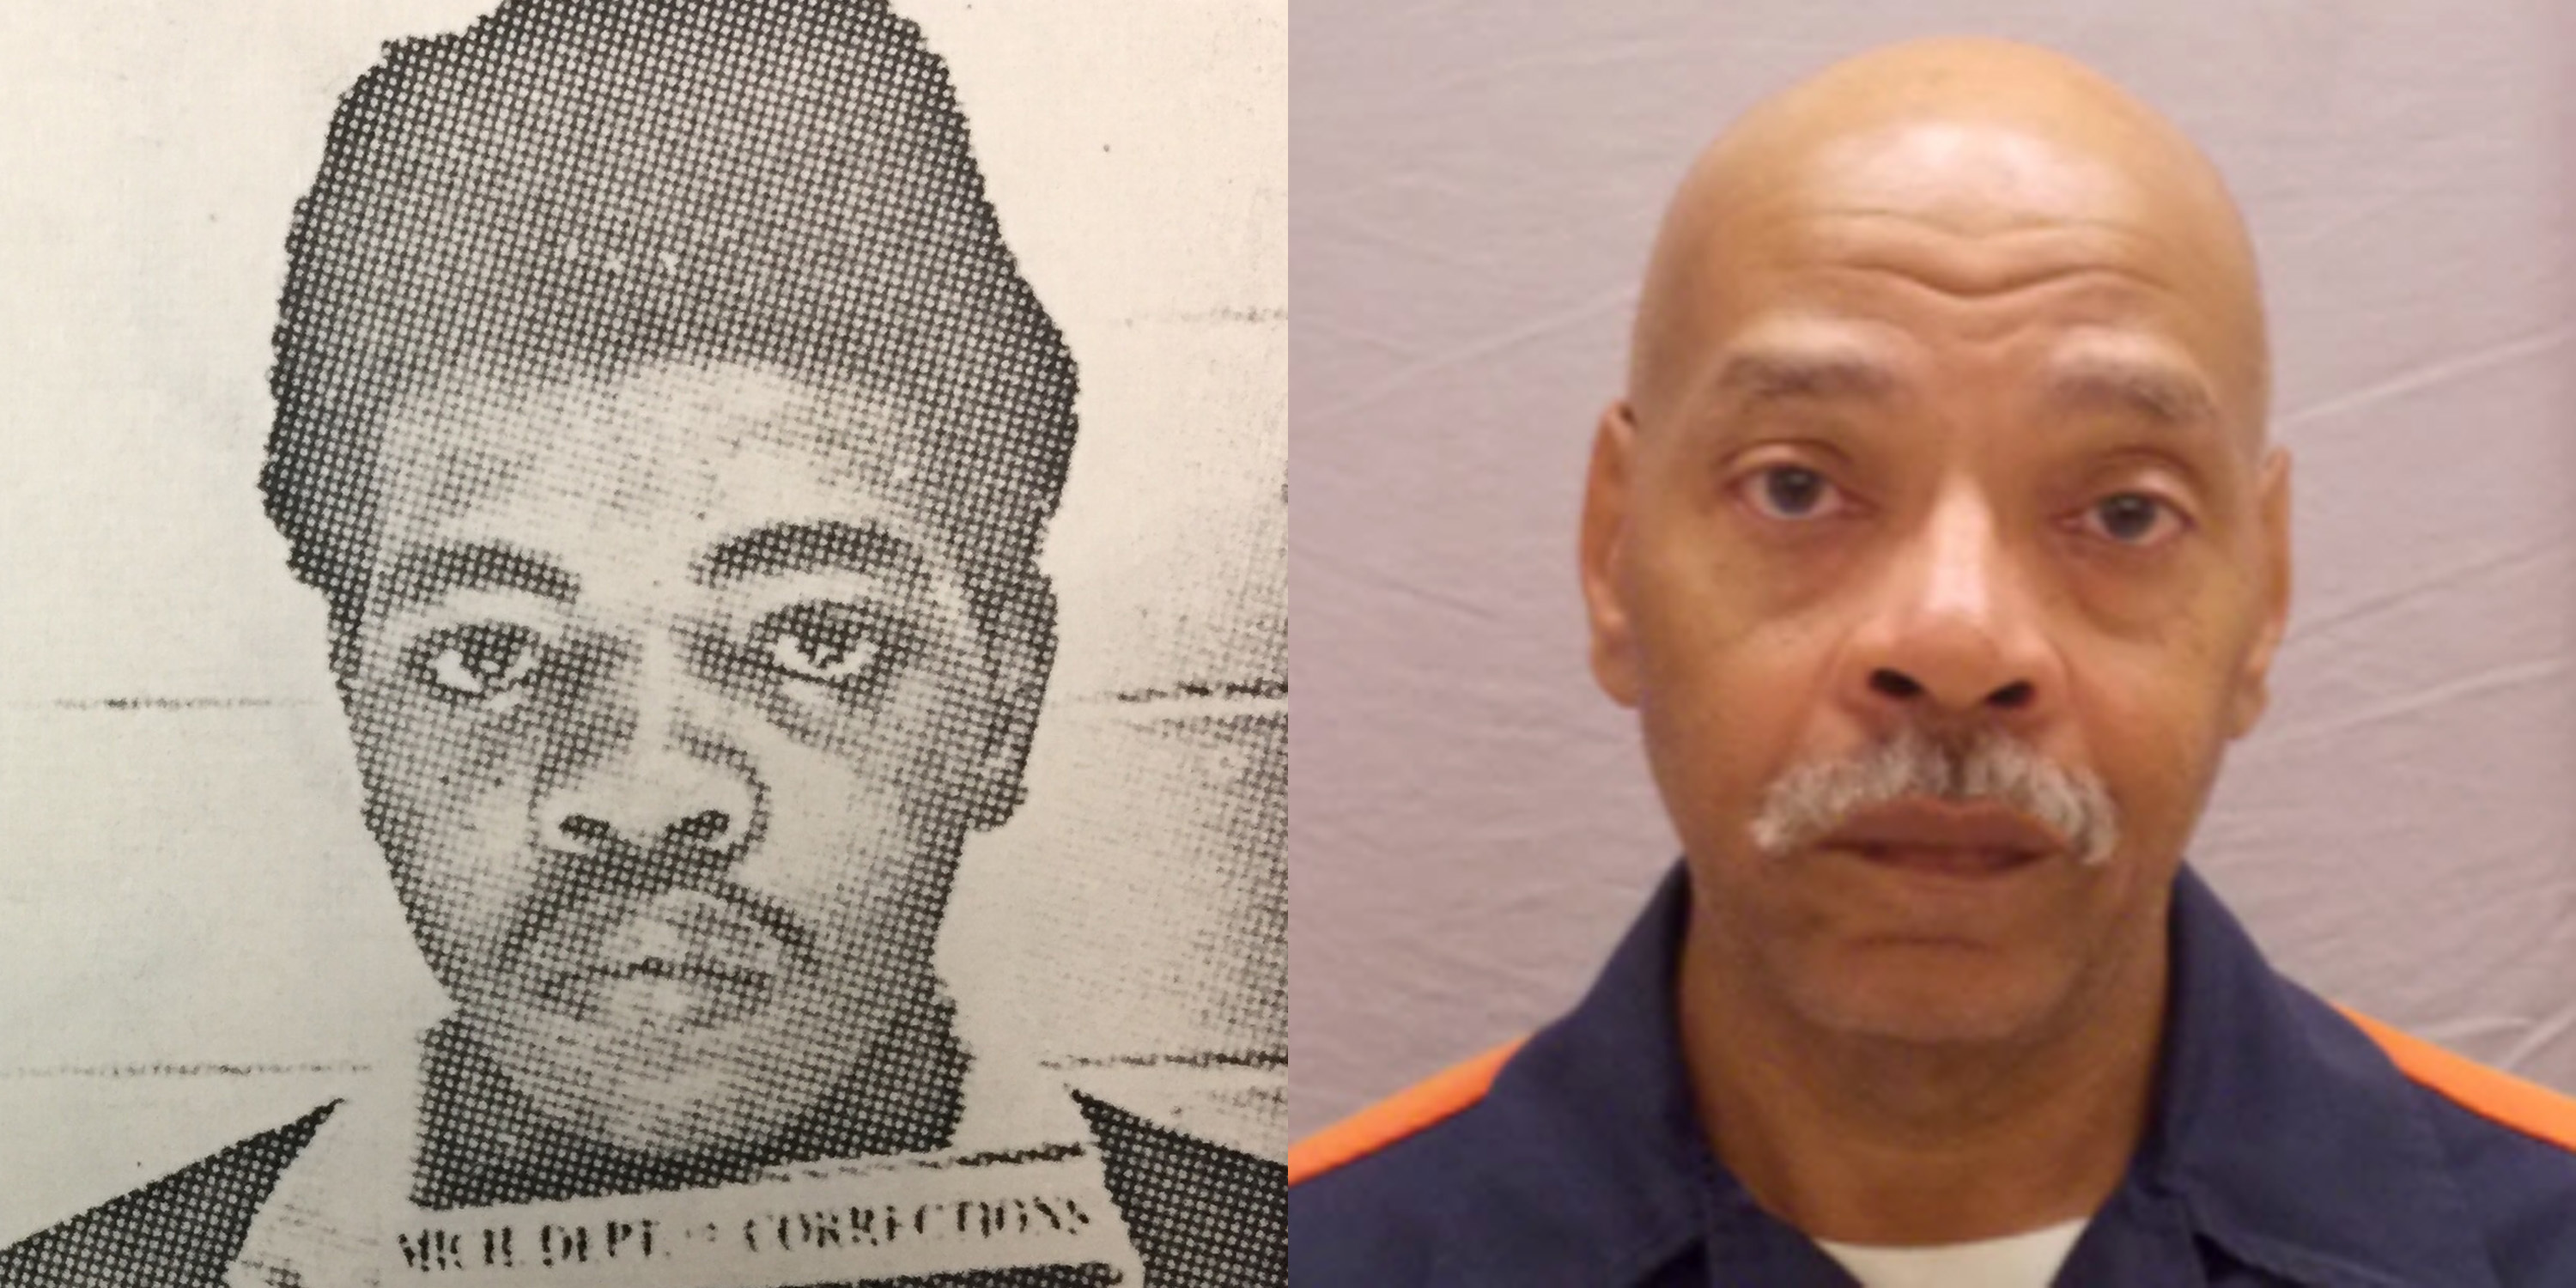 This combination of photos provided by the Michigan Department of Corrections shows Chester Lee Patterson in 1971 and in Aug. 8, 2015. Patterson has been behind bars for 45 years. (MDOC via AP)